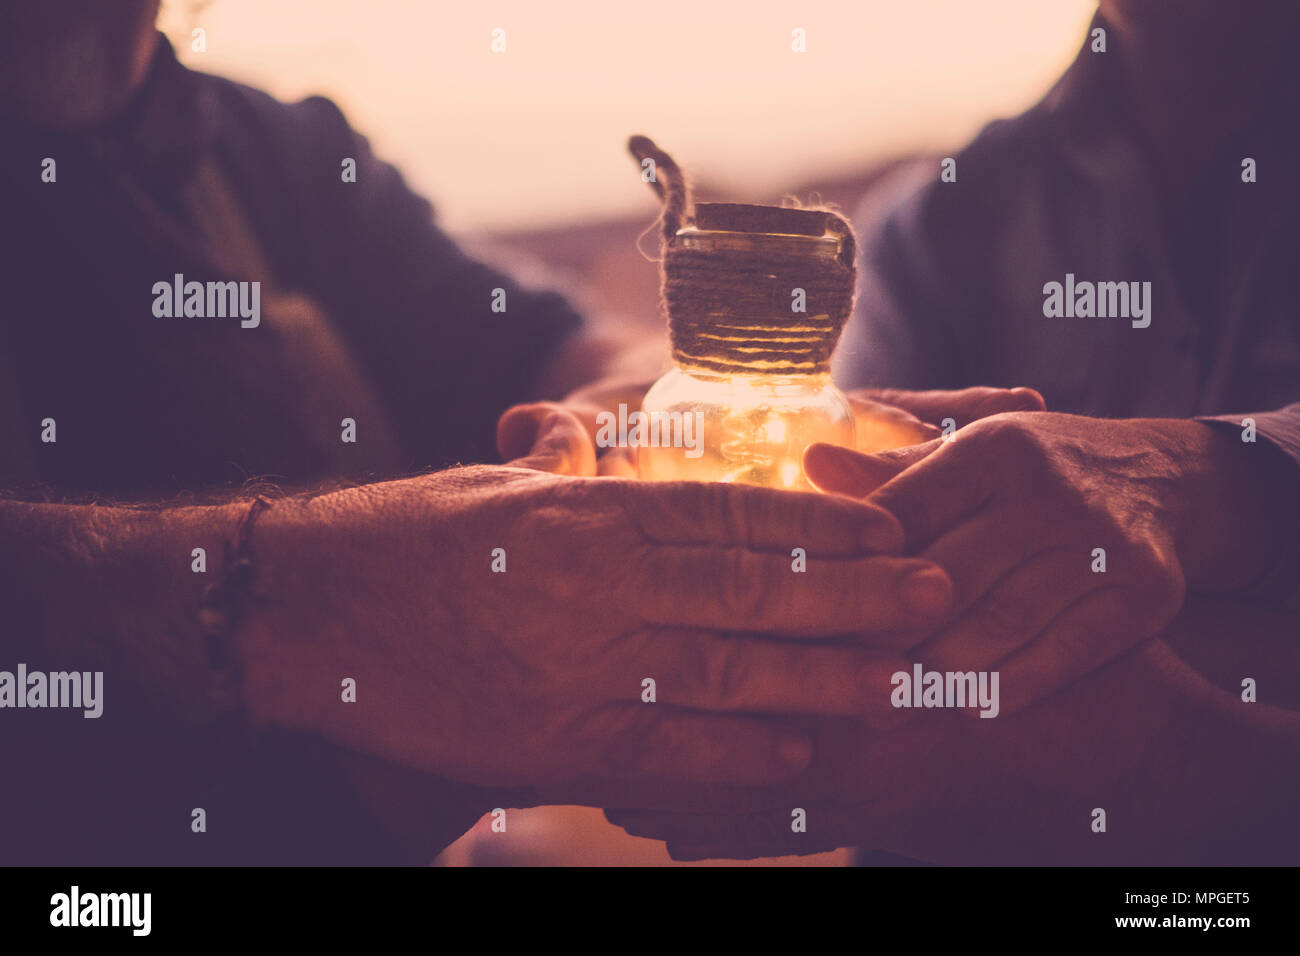 8 joined hands hold a small glass jar containing a yellow light. Stock Photo